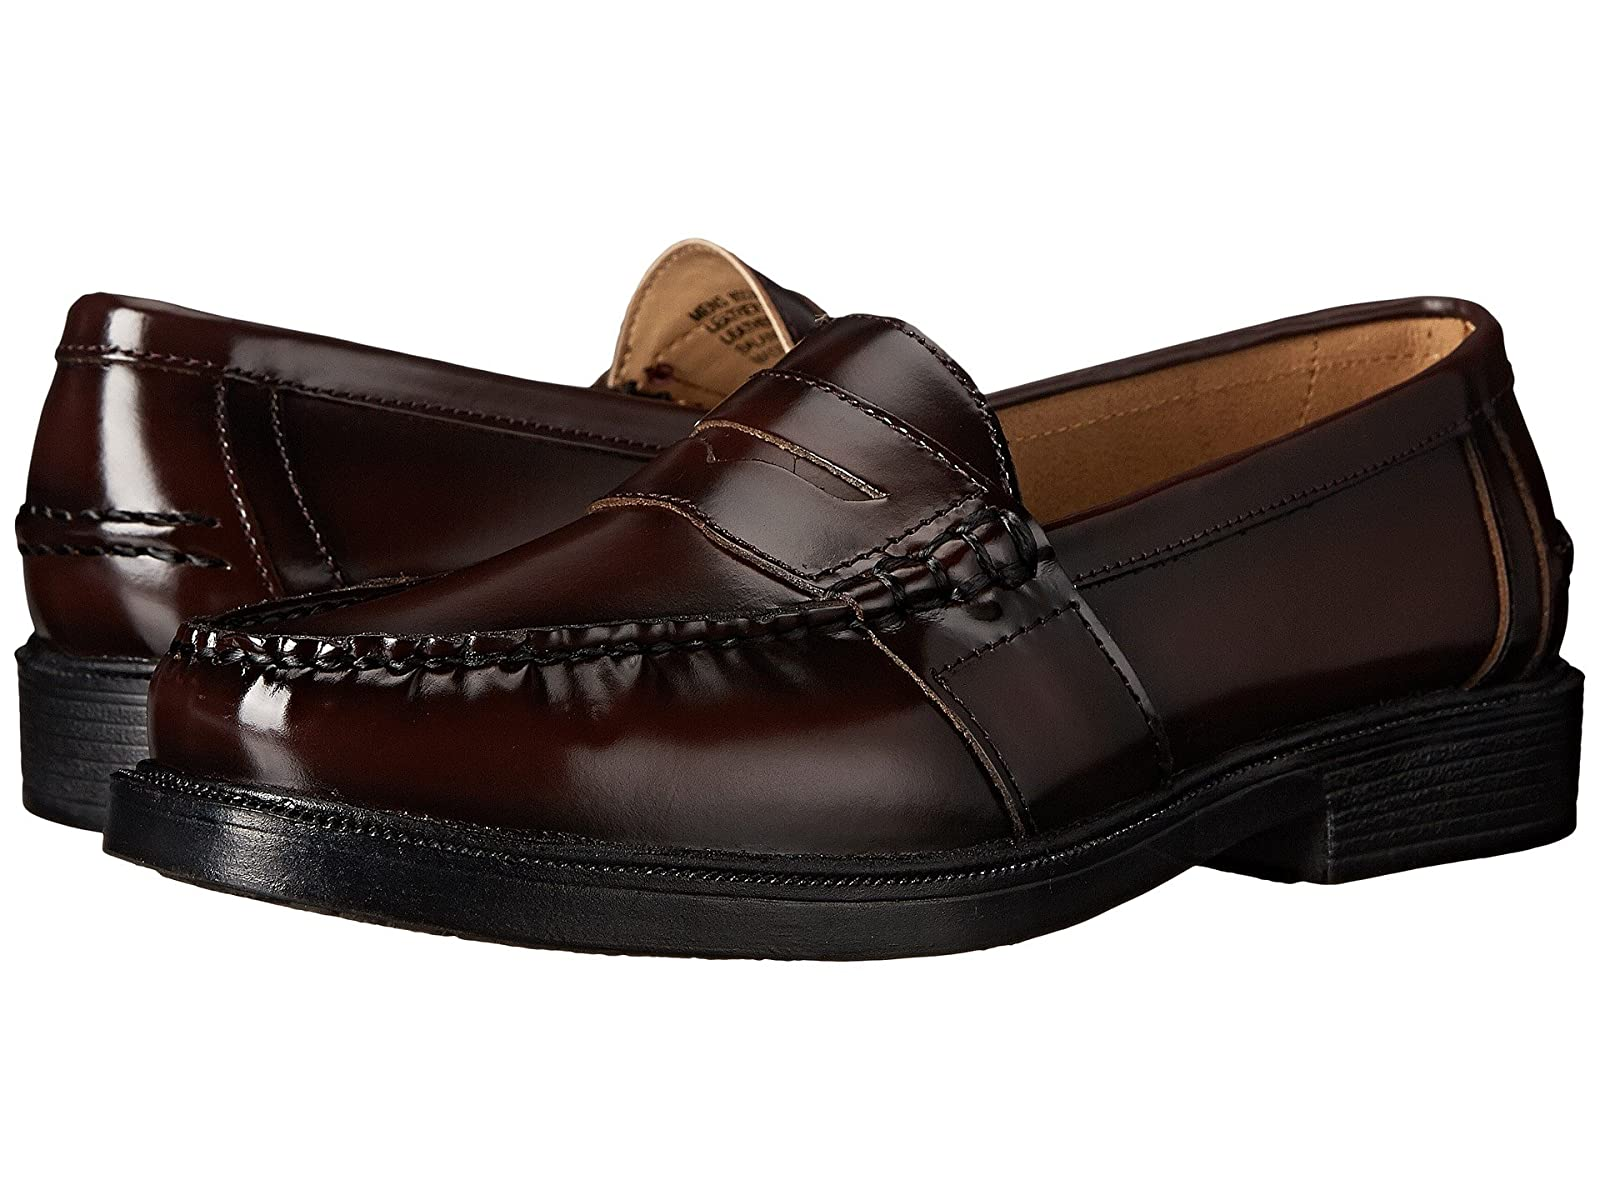 Nunn Bush Lincoln Penny LoaferAtmospheric grades have affordable shoes